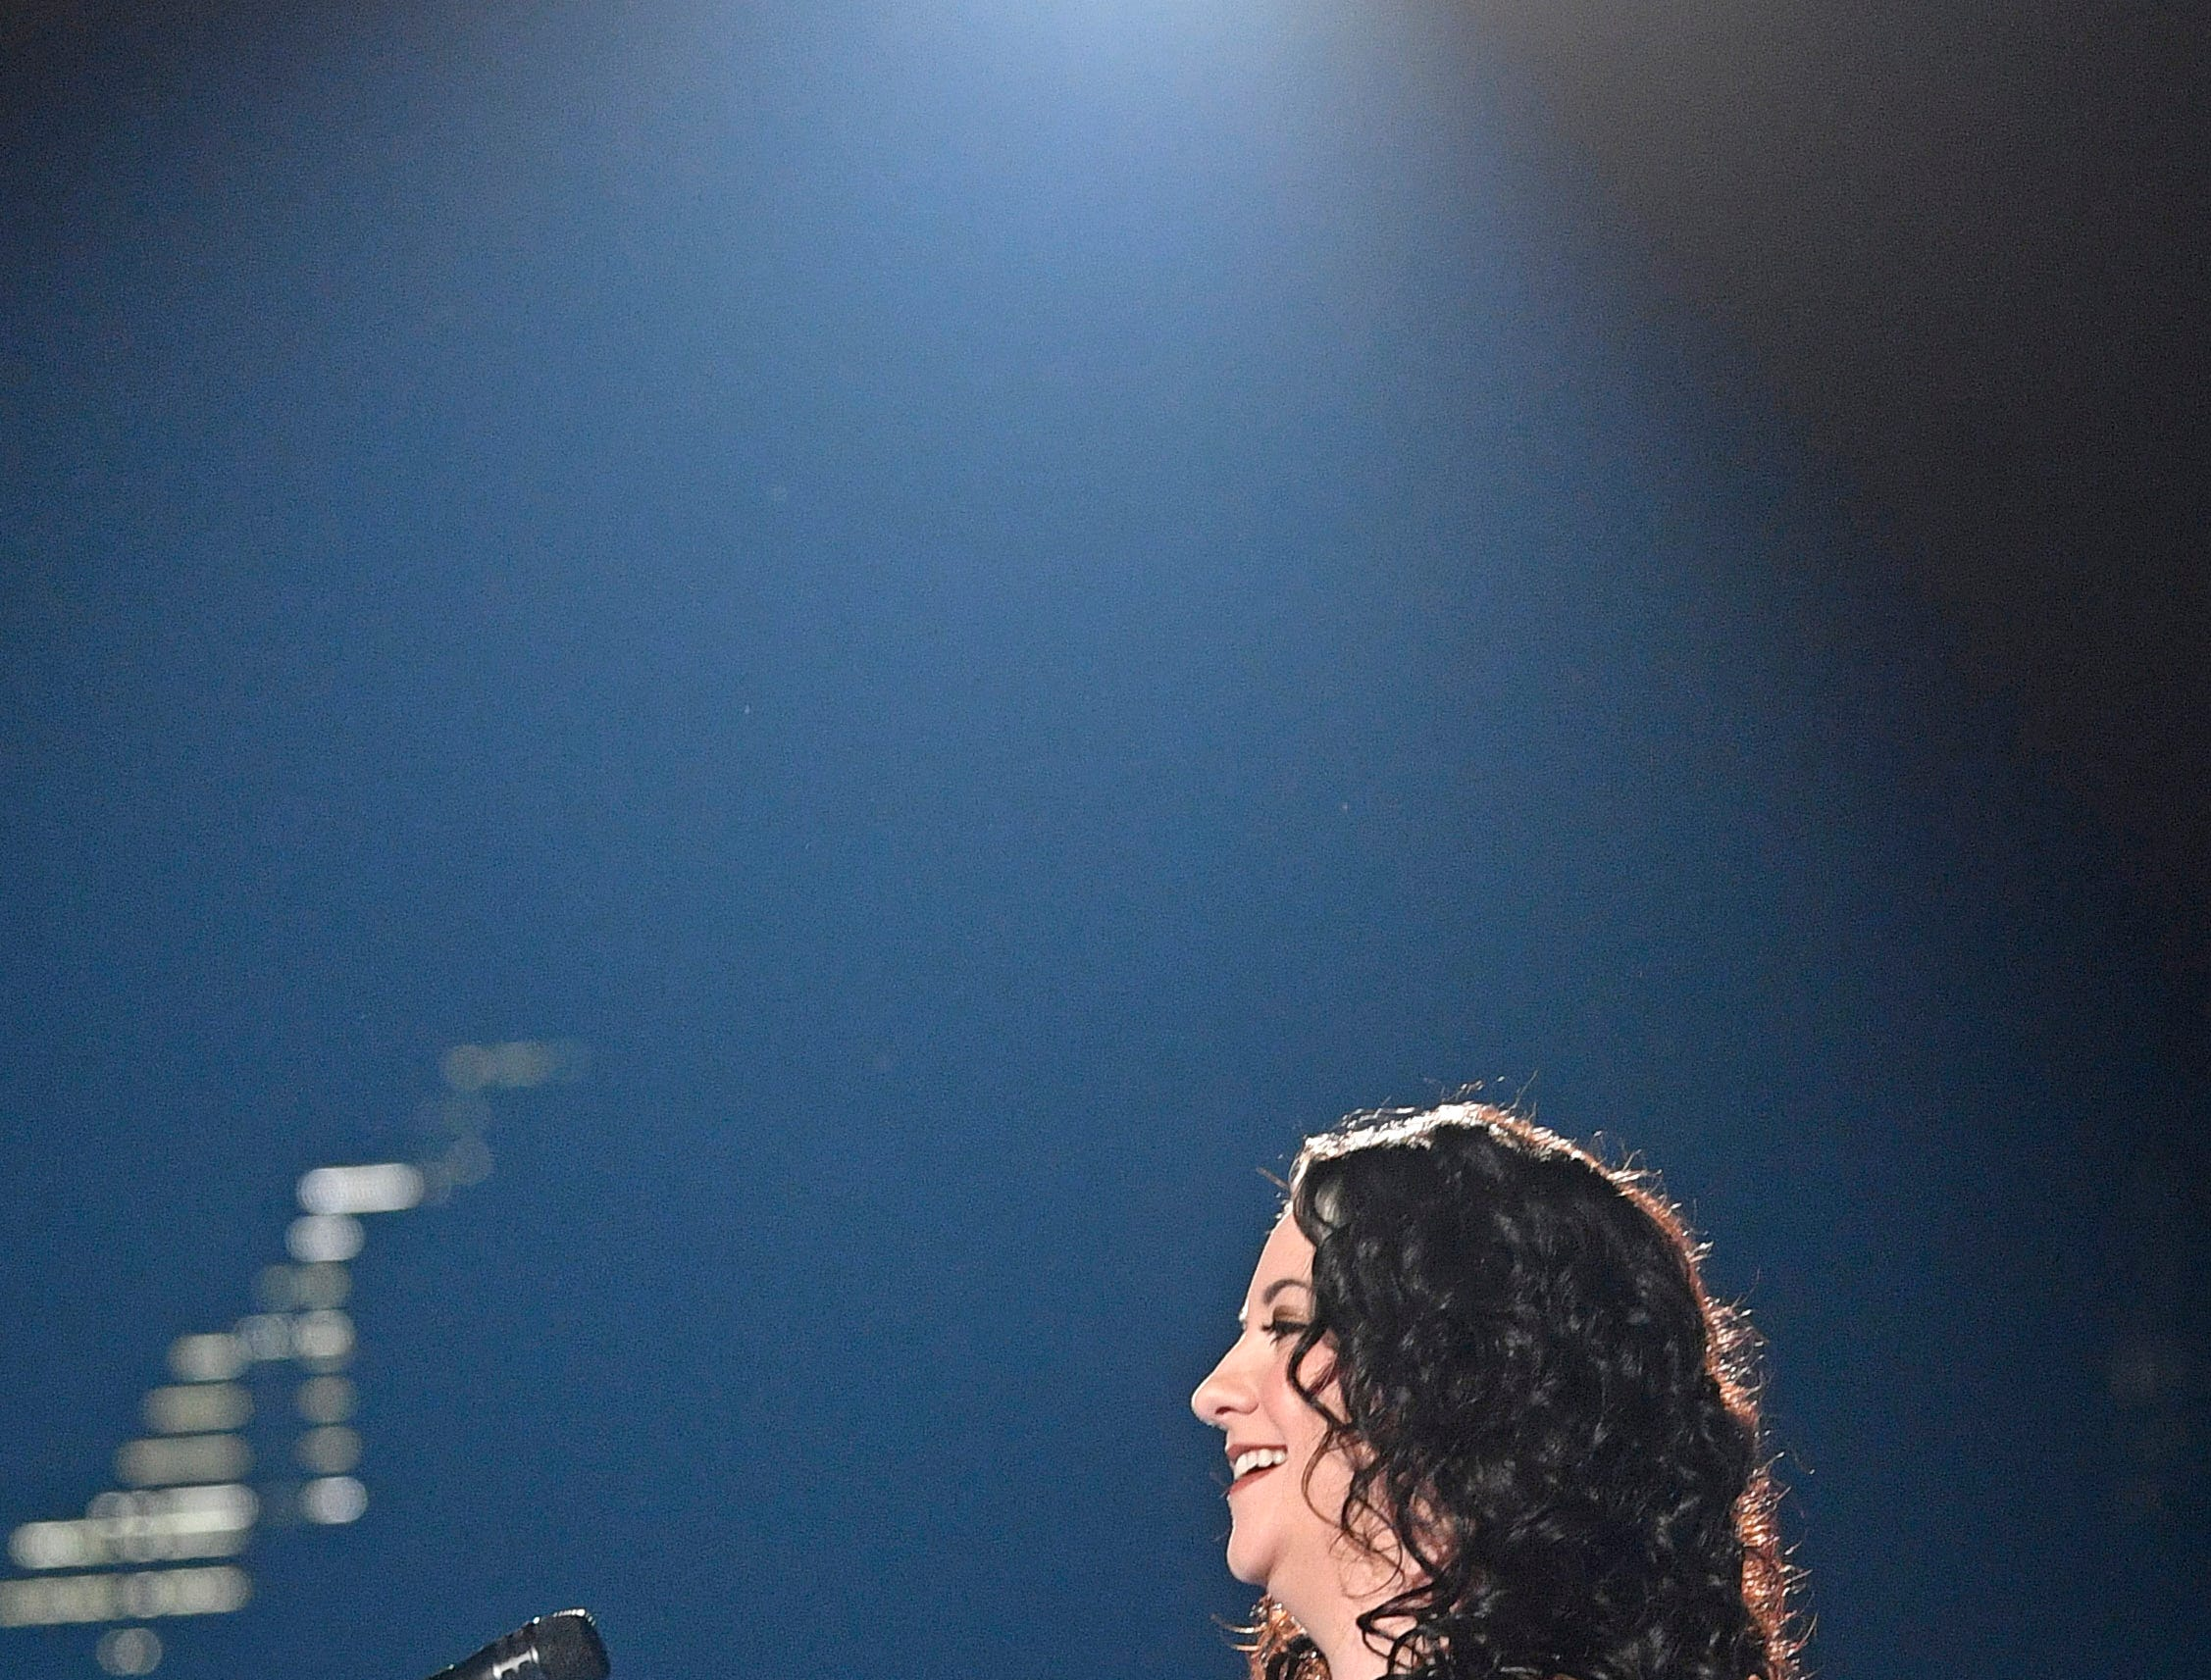 """Ashley McBryde rehearses her song """"Girl Going Nowhere""""  for her performance at the 54TH Academy of Country Music Awards Saturday, April 6, 2019, in Las Vegas, Nev."""